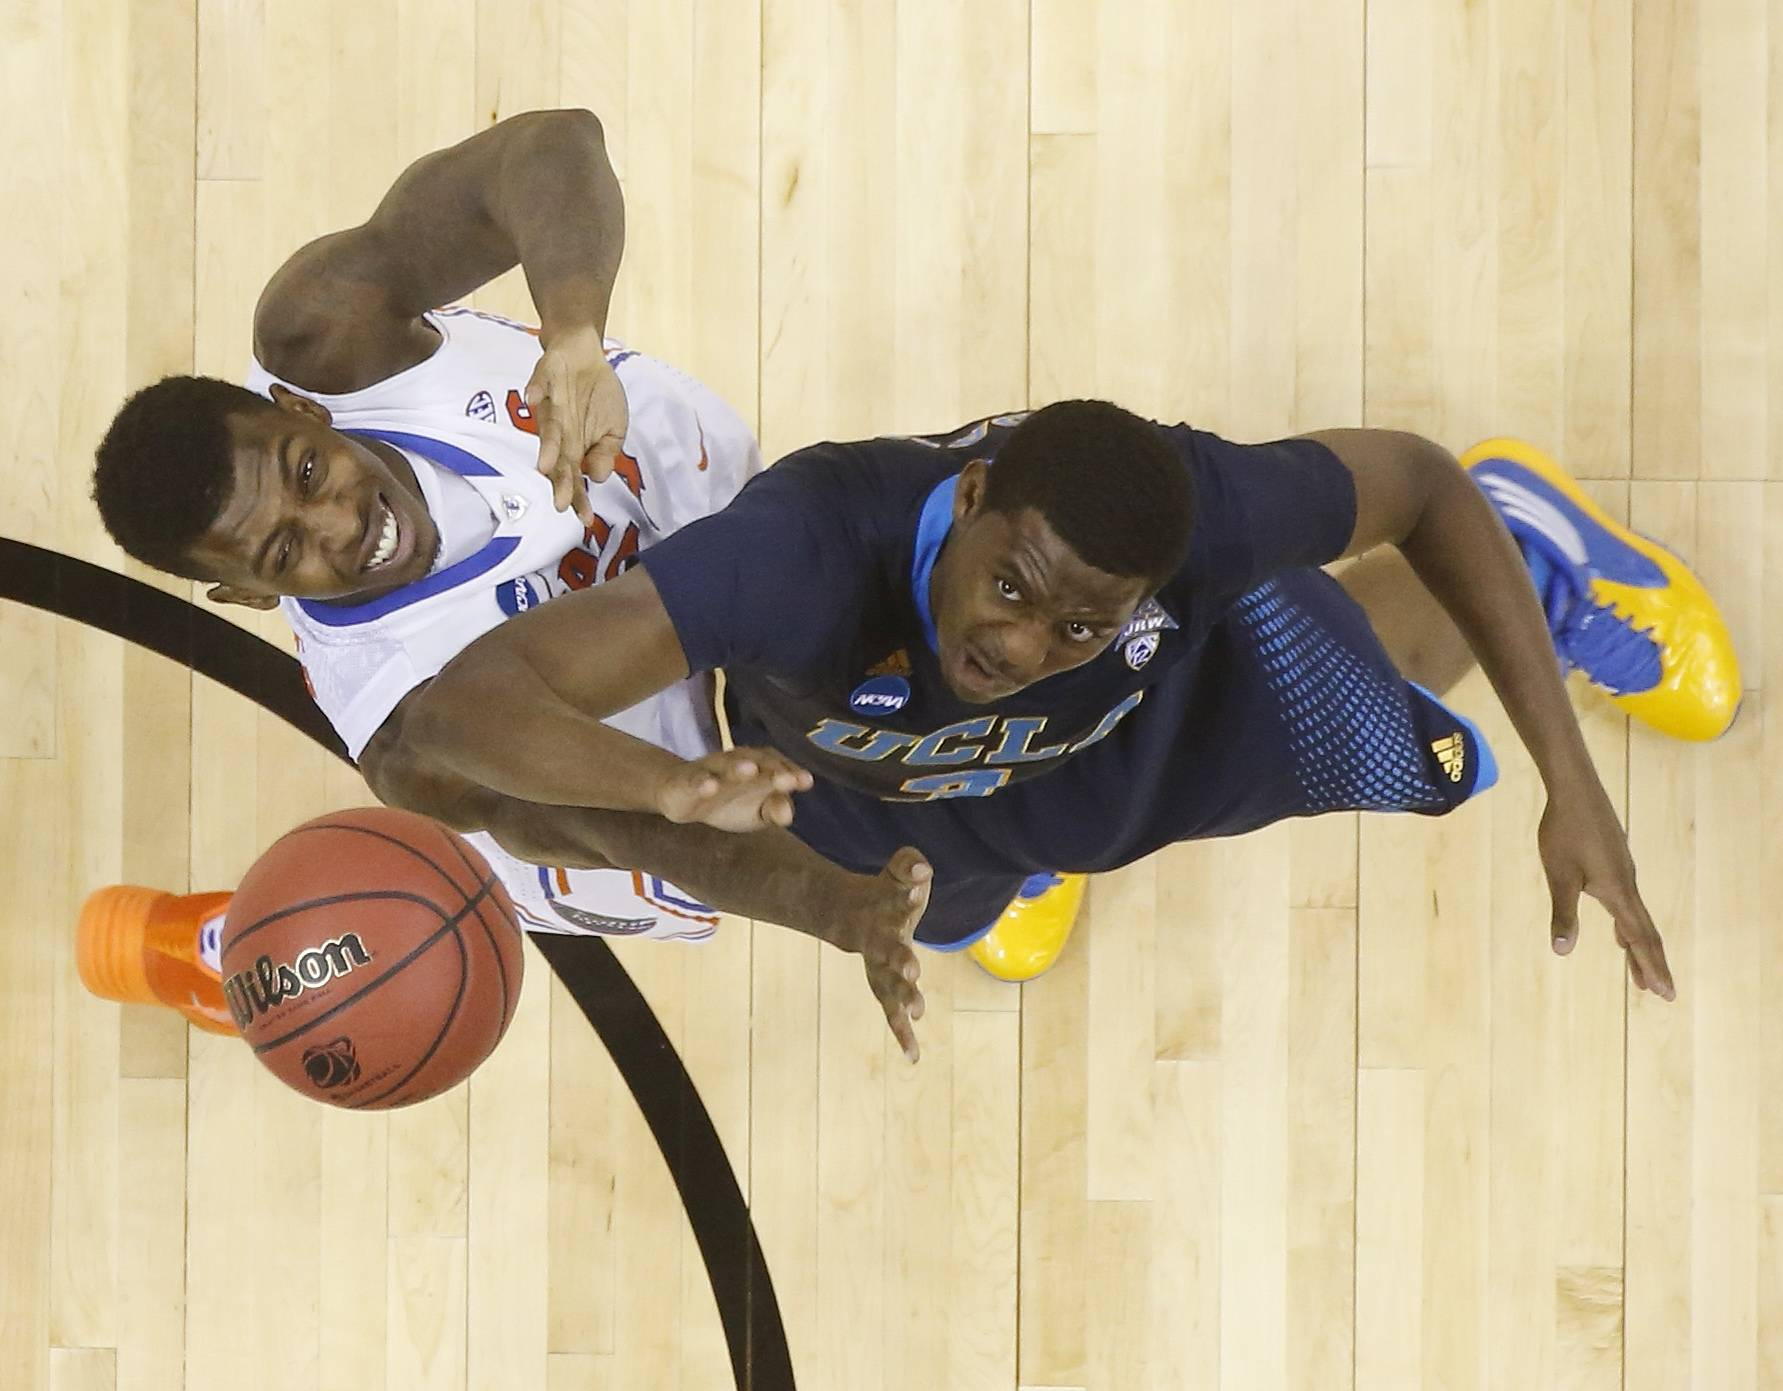 UCLA guard Jordan Adams (3) shoots against Florida forward Casey Prather (24) during the second half.